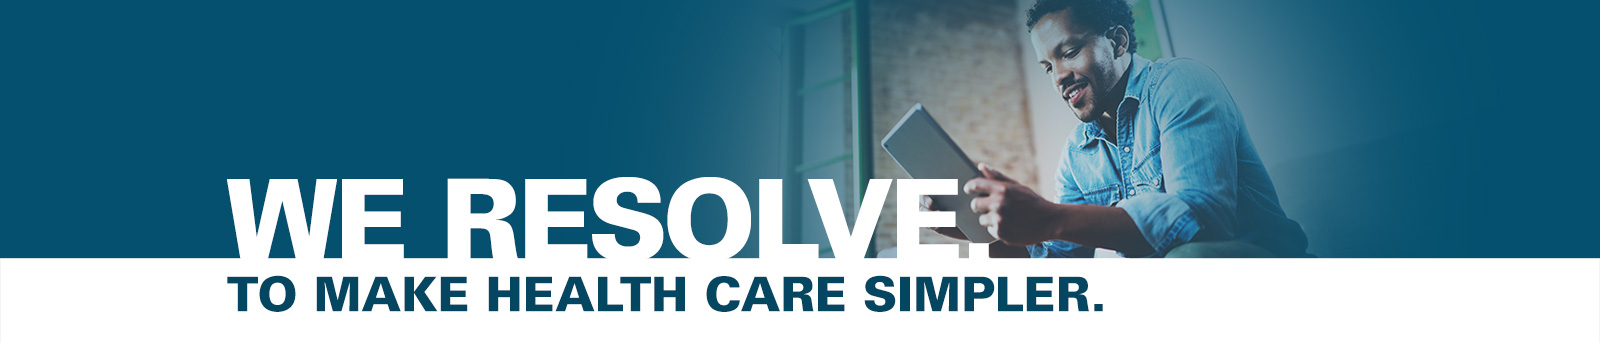 We Resolve to Make Health Care Simpler